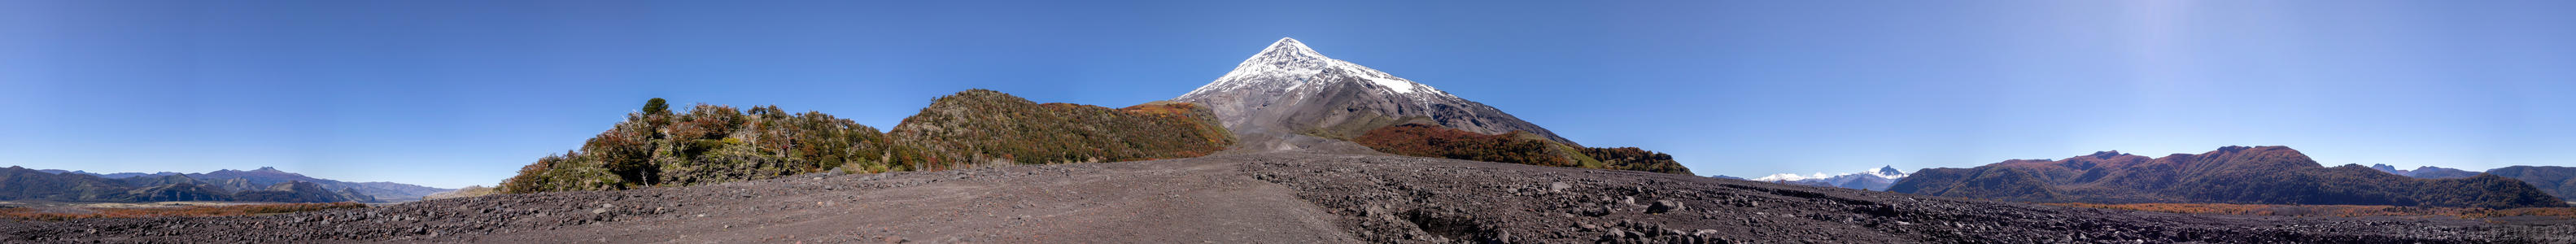 Base of Volcano Lanin in 360 - A full 360 degree view of the walk up to the base of Volcano Lanin